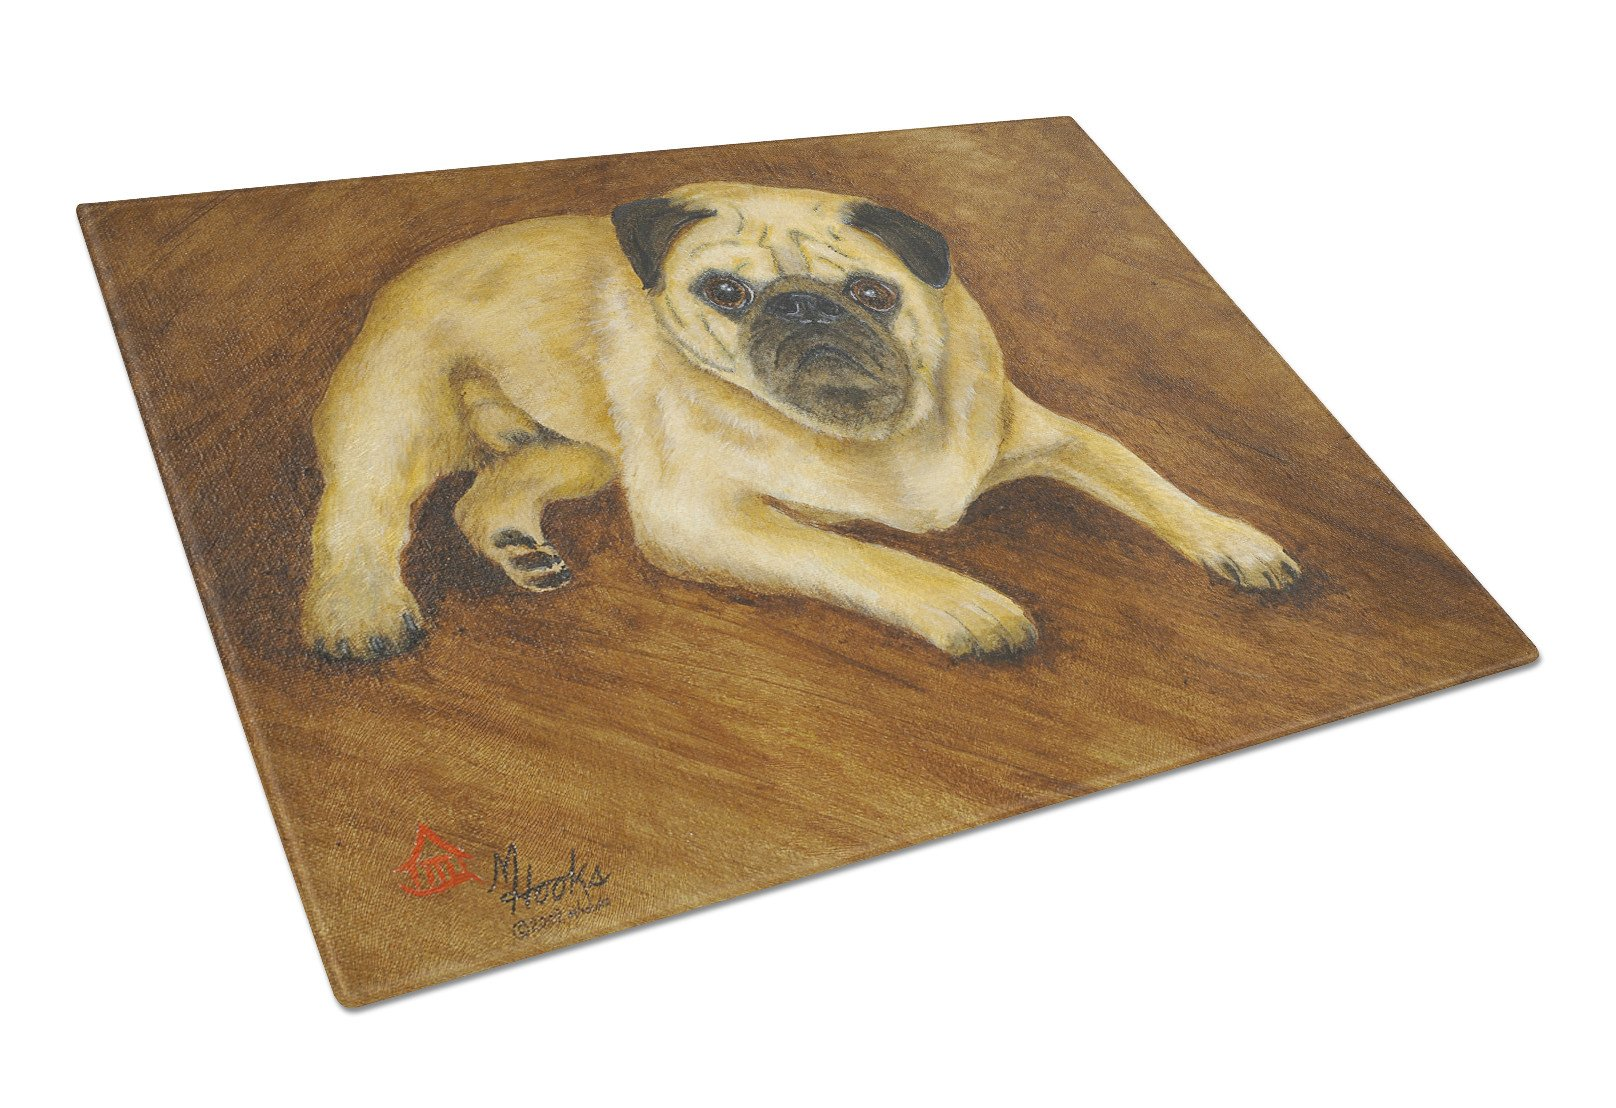 Fawn Pug Roscoe Glass Cutting Board Large MH1062LCB by Caroline's Treasures